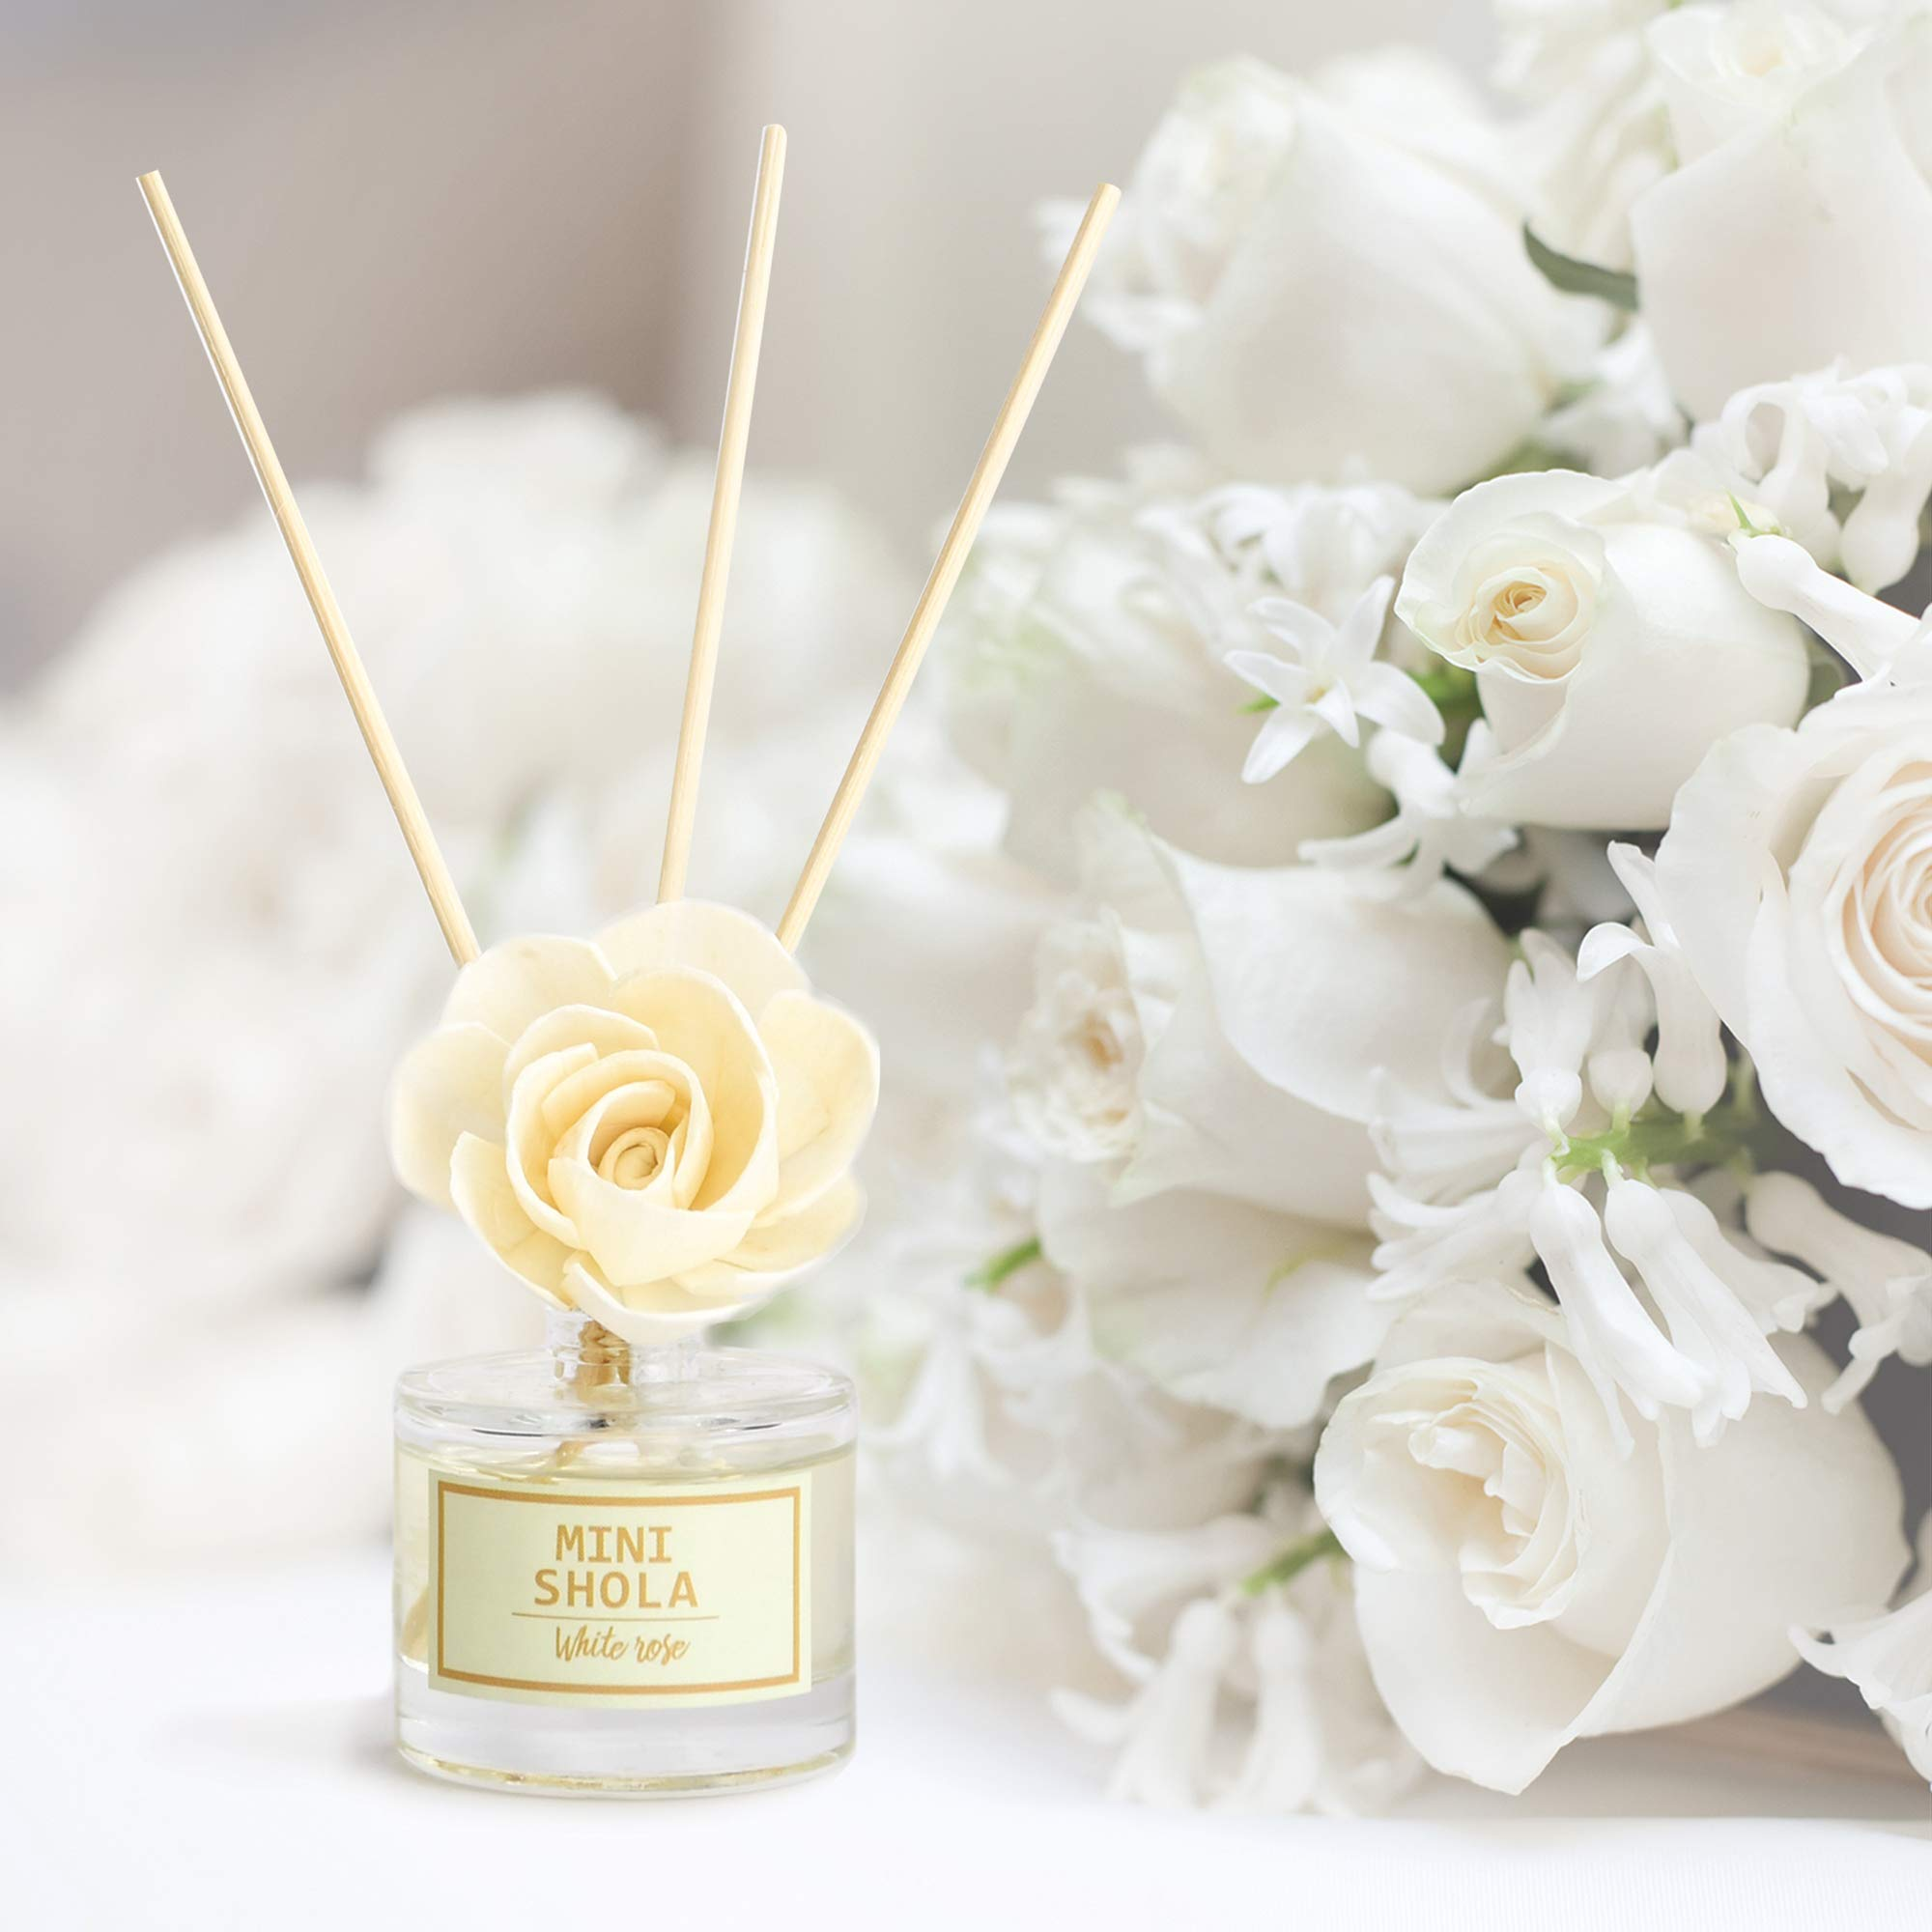 Aronica Mini Floral Diffuser 2 Pack Set - Sola Flower White Rose (40ml) + Muguet (40ml) by Aronica (Image #3)